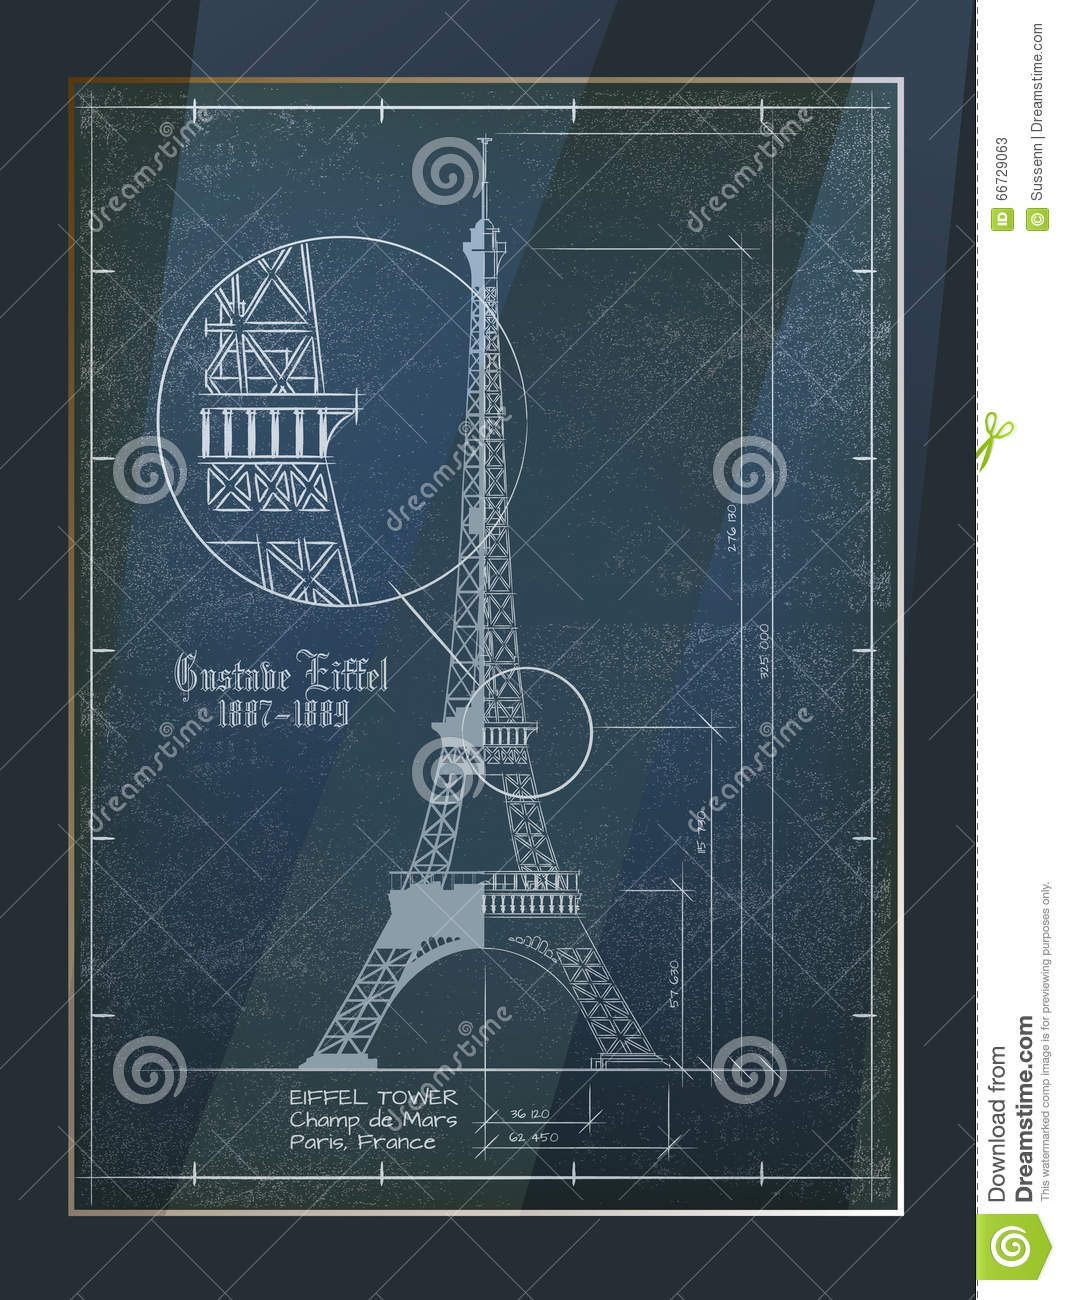 plane blueprint art with Stock Illustration Eiffel Tower Drawing Old Architectural Blueprint Frame Image66729063 on Curtiss P 40 Warhawk likewise Wright Brothers Airplane Patent Vintage Aviation Art Airplane Art Airplane Blueprint Pilot Gift Aircraft Decor Airplane Poster as well 903 furthermore Stock Illustration Eiffel Tower Drawing Old Architectural Blueprint Frame Image66729063 in addition Pilot gifts.